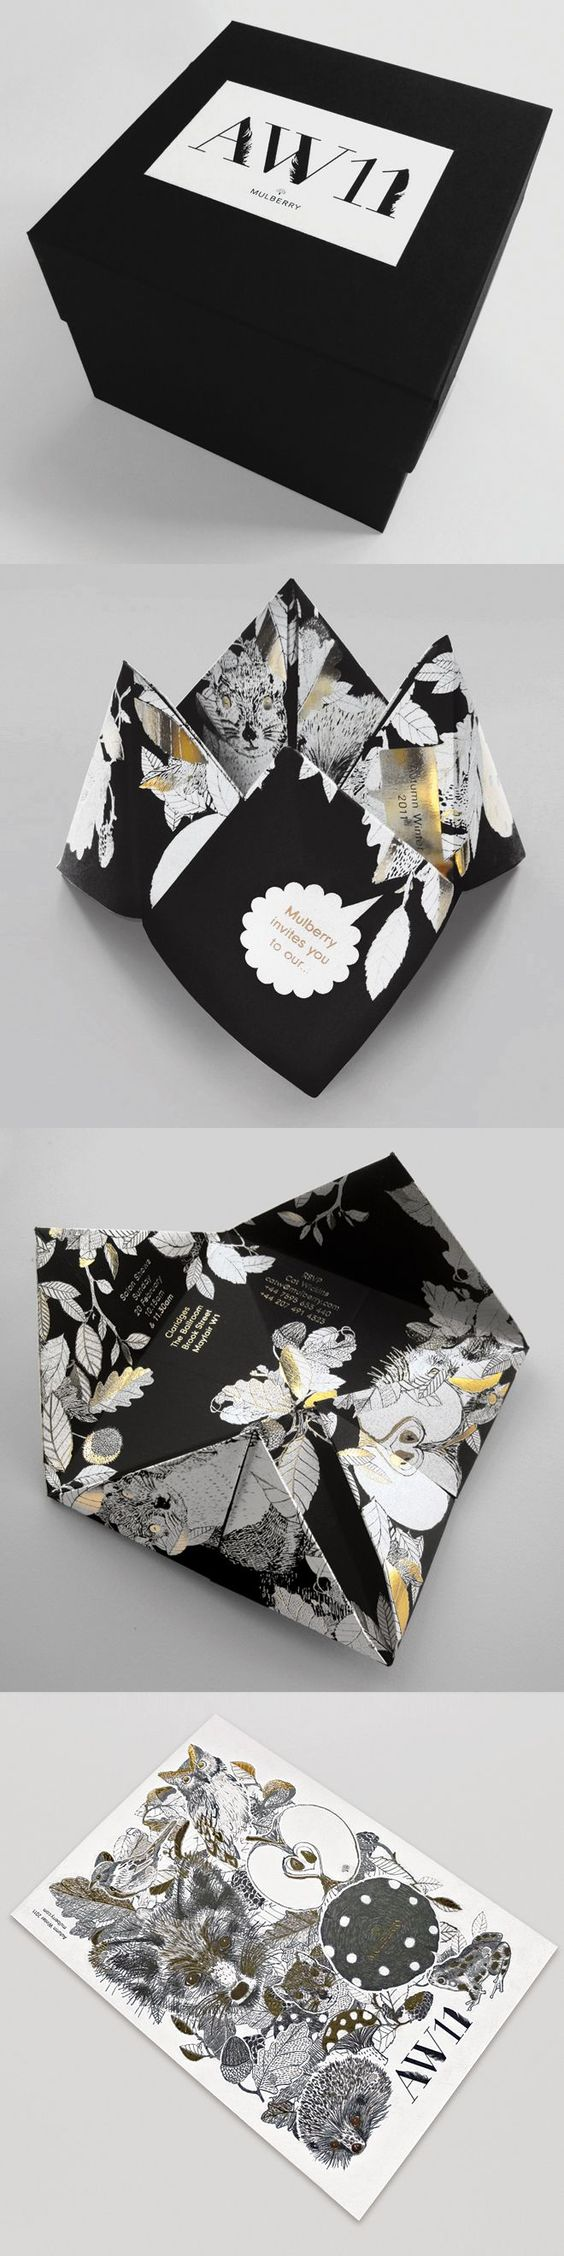 folded design in box.jpg